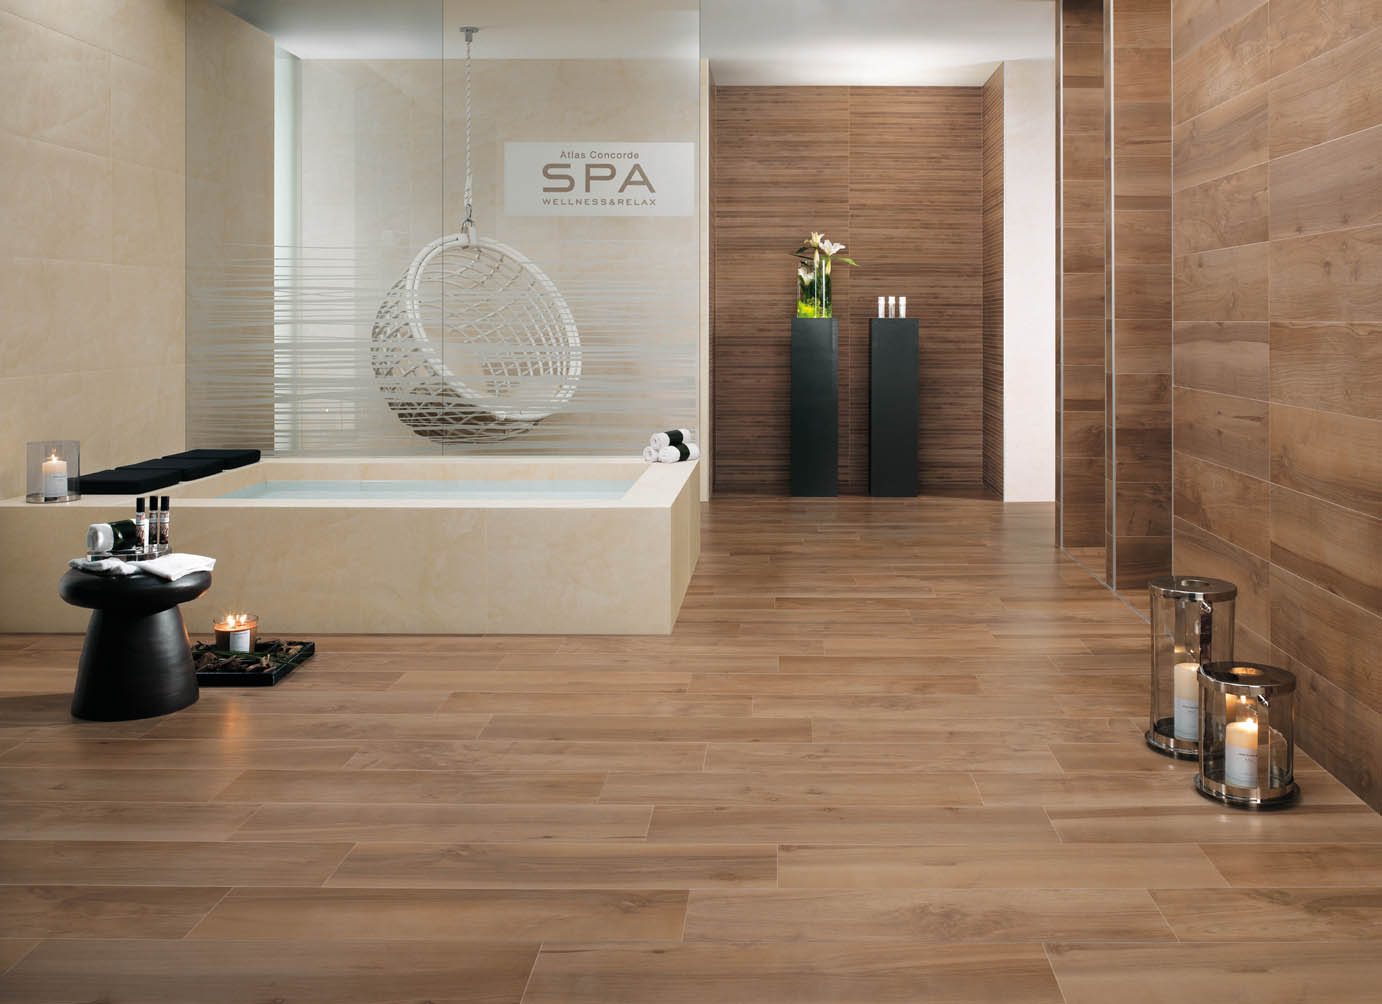 Carrelages int imitations parquets bois duc for Porcelanosa carrelage exterieur imitation bois